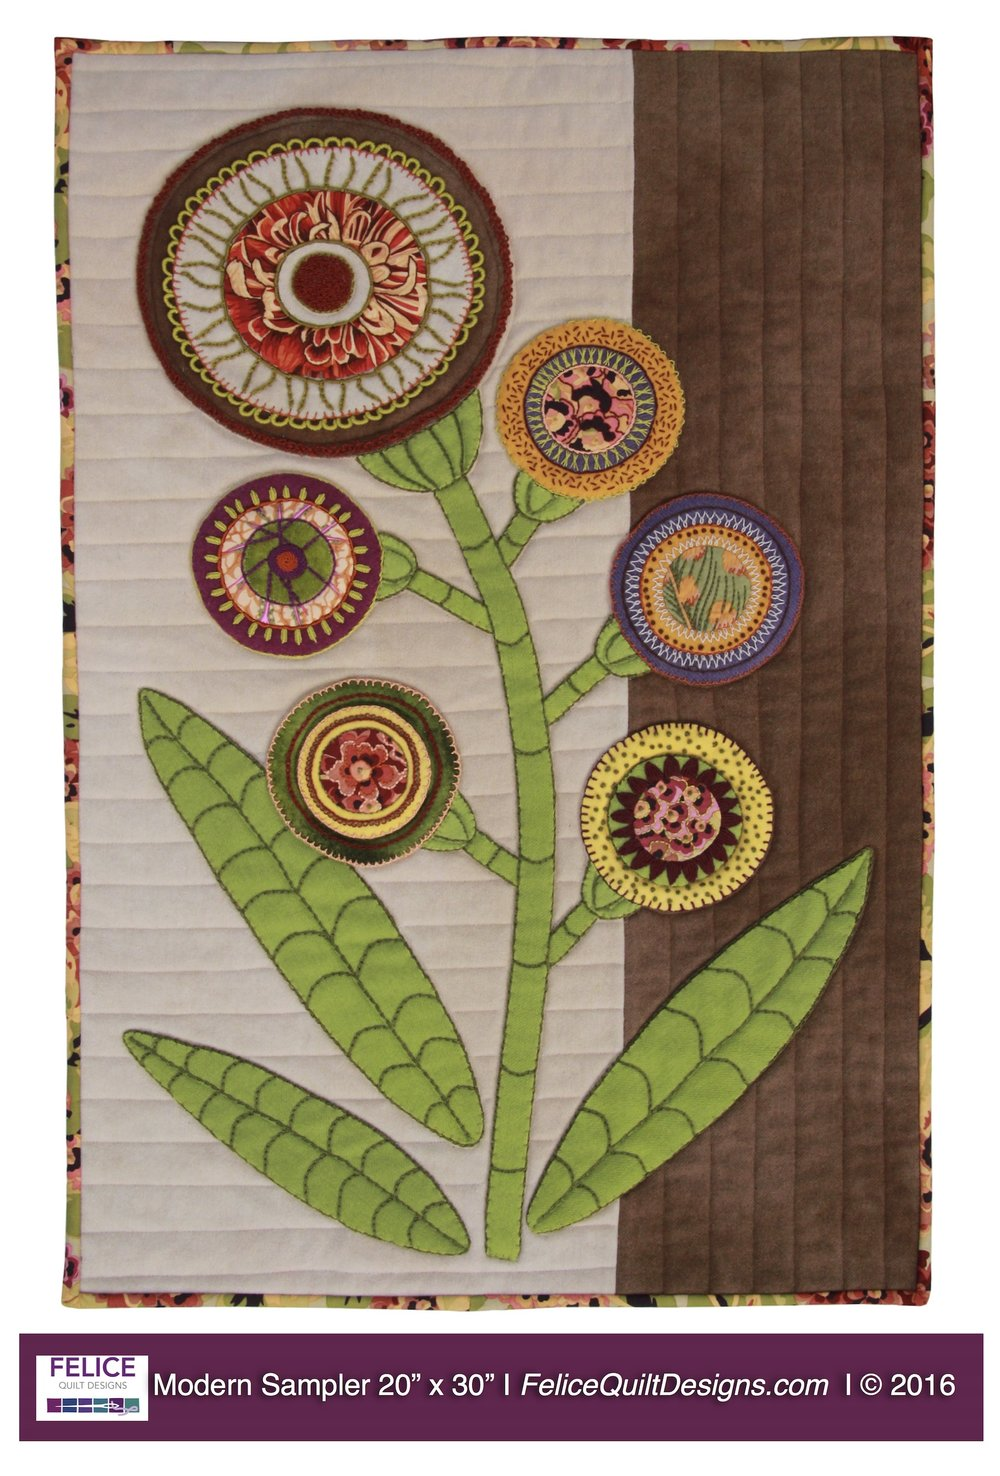 The Modern Sampler is an Intermediate Class for those that have some experience with basic wool applique.